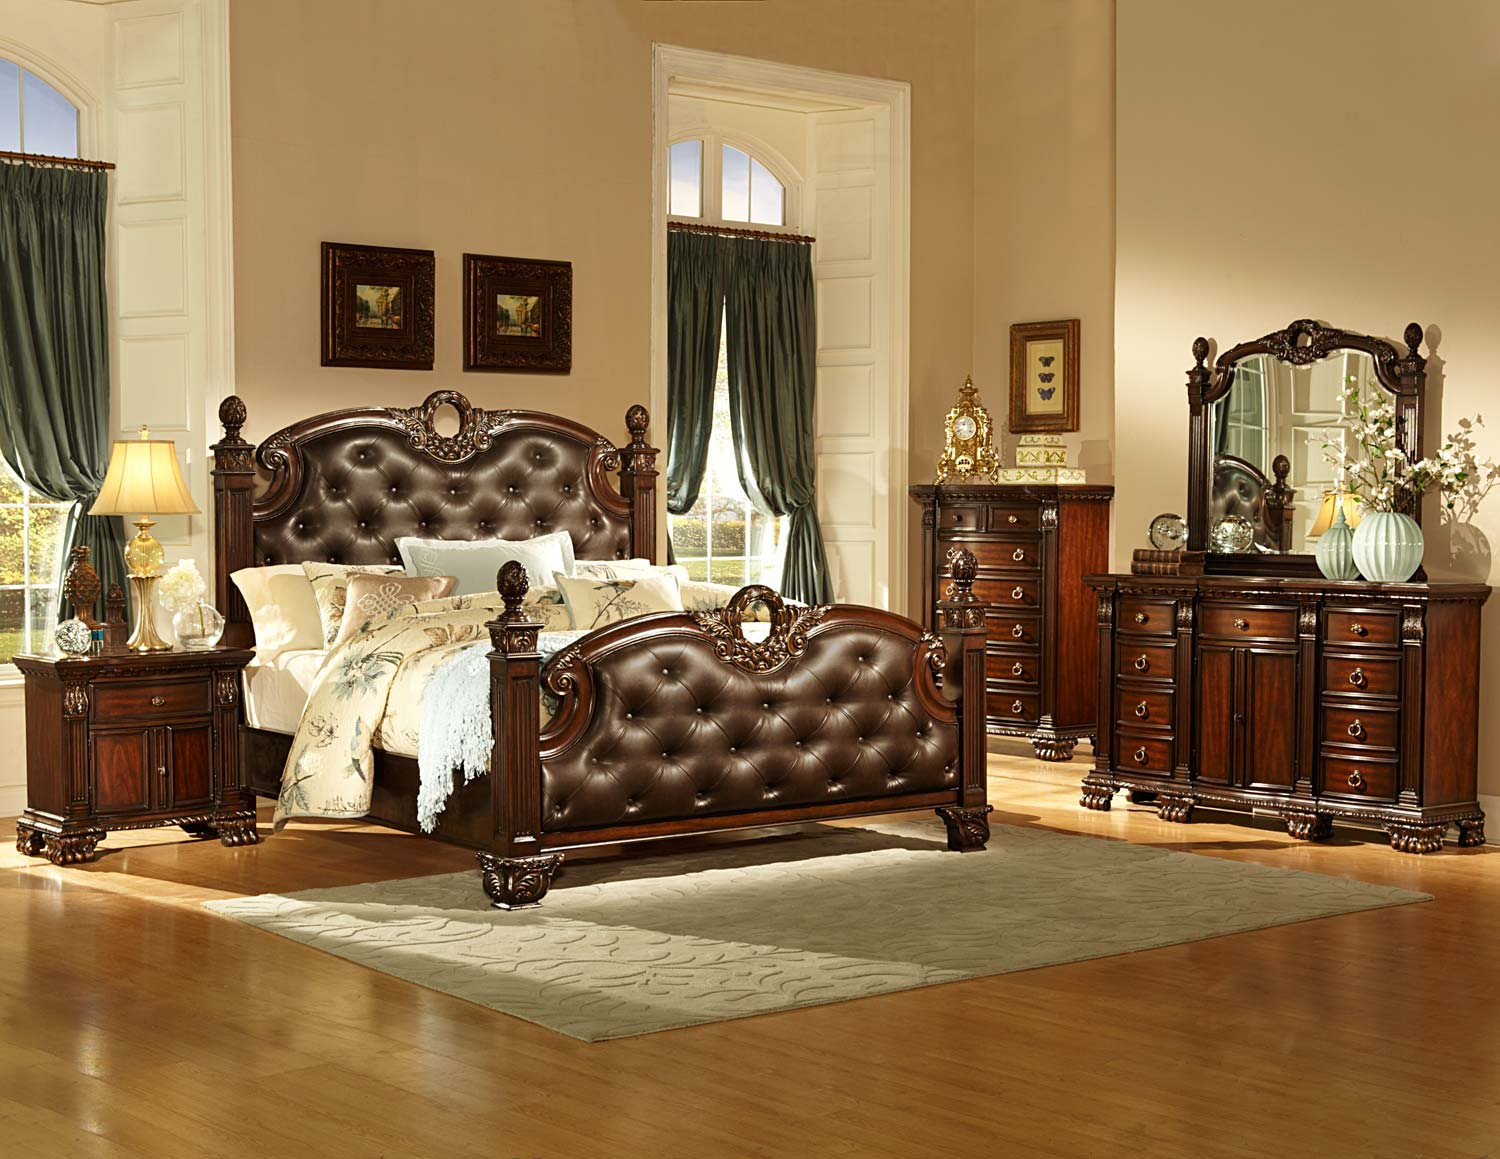 Homelegance Orleans Bedroom Set - Cherry